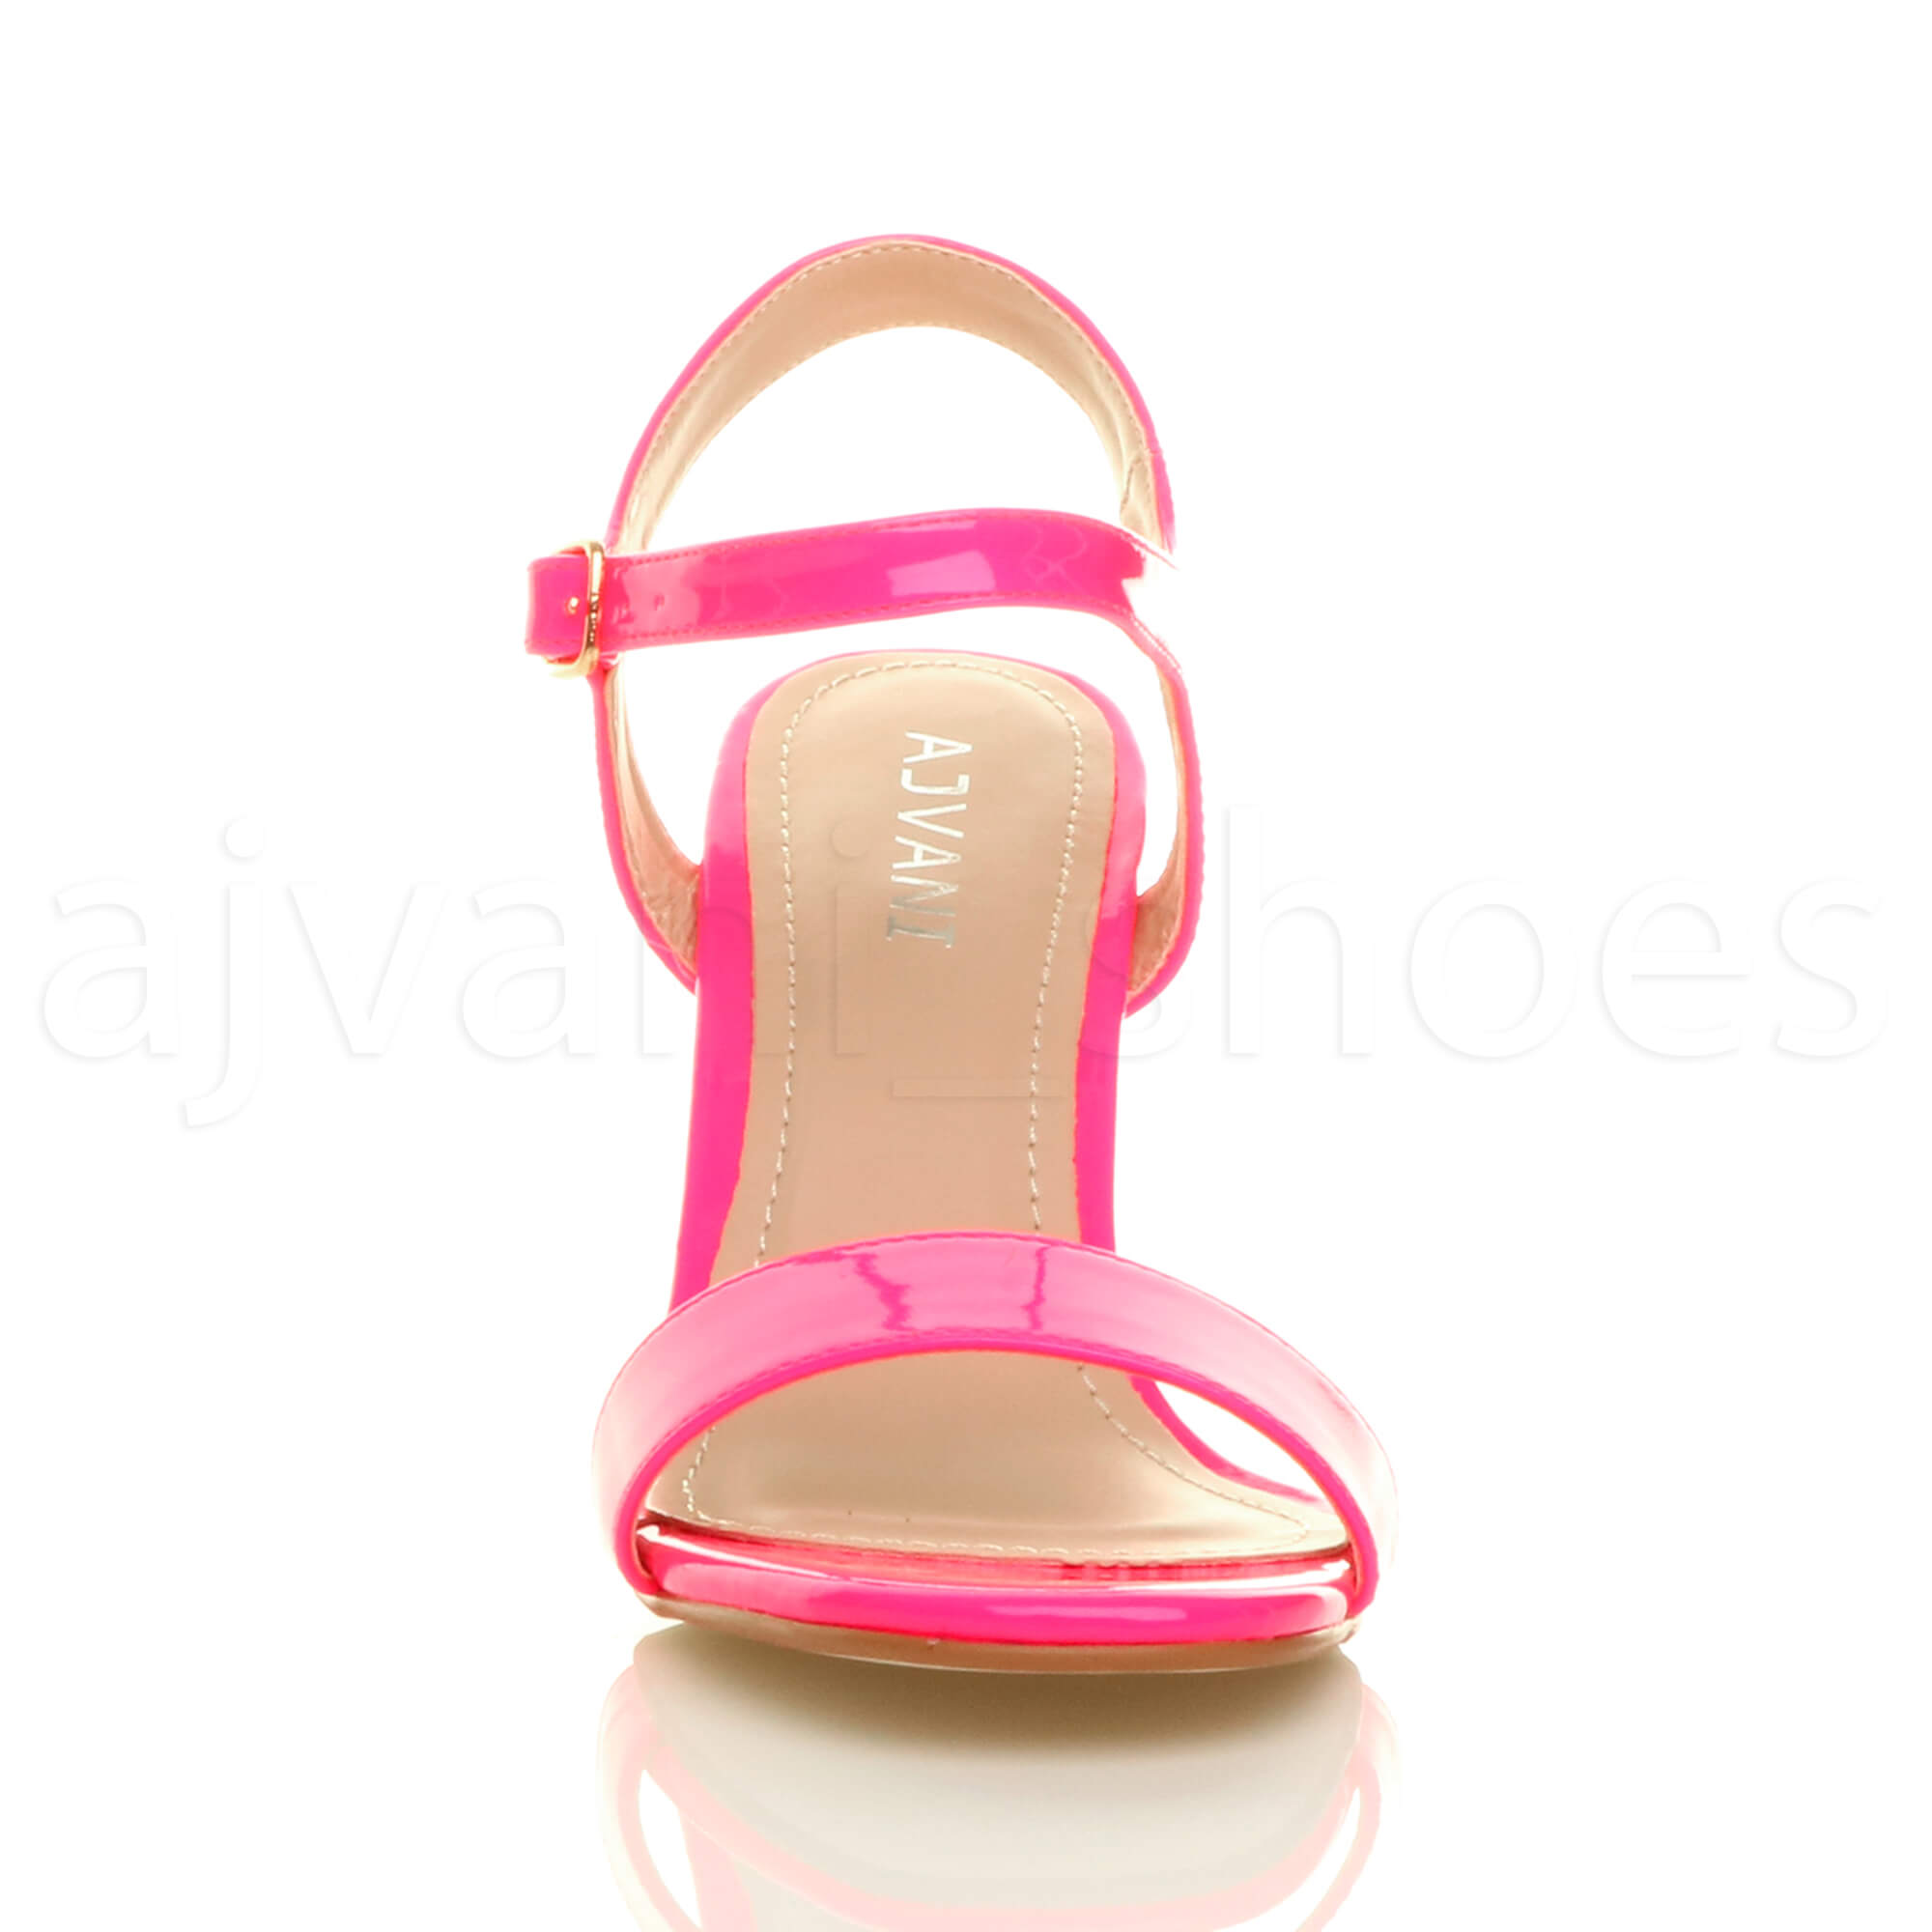 WOMENS-LADIES-HIGH-HEEL-BUCKLE-STRAPPY-BASIC-BARELY-THERE-SANDALS-SHOES-SIZE thumbnail 83